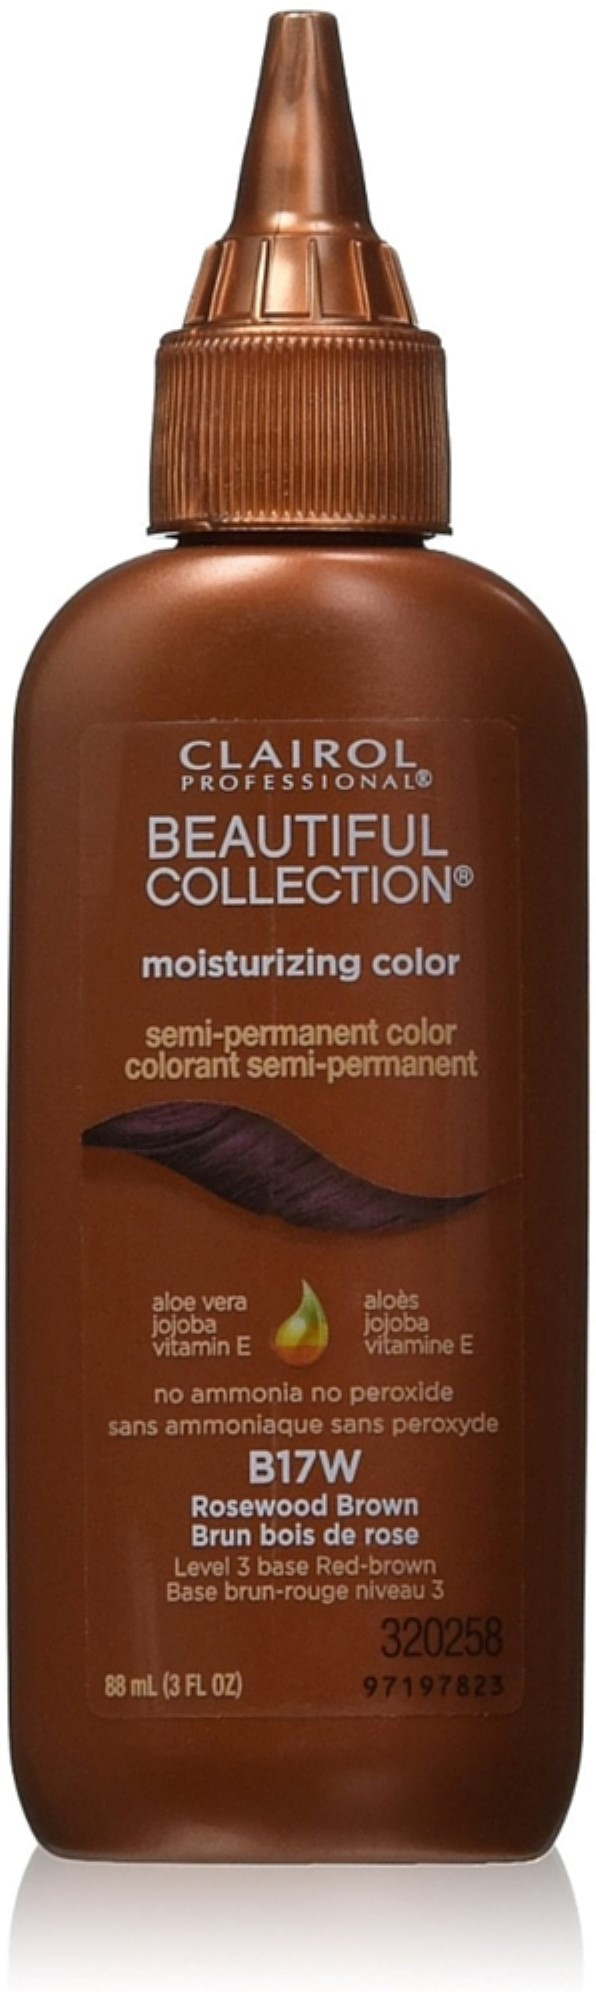 Clairol professional beautiful collection semi permanent hair clairol professional beautiful collection semi permanent hair color rosewood brown b17w 3 oz walmart geenschuldenfo Gallery